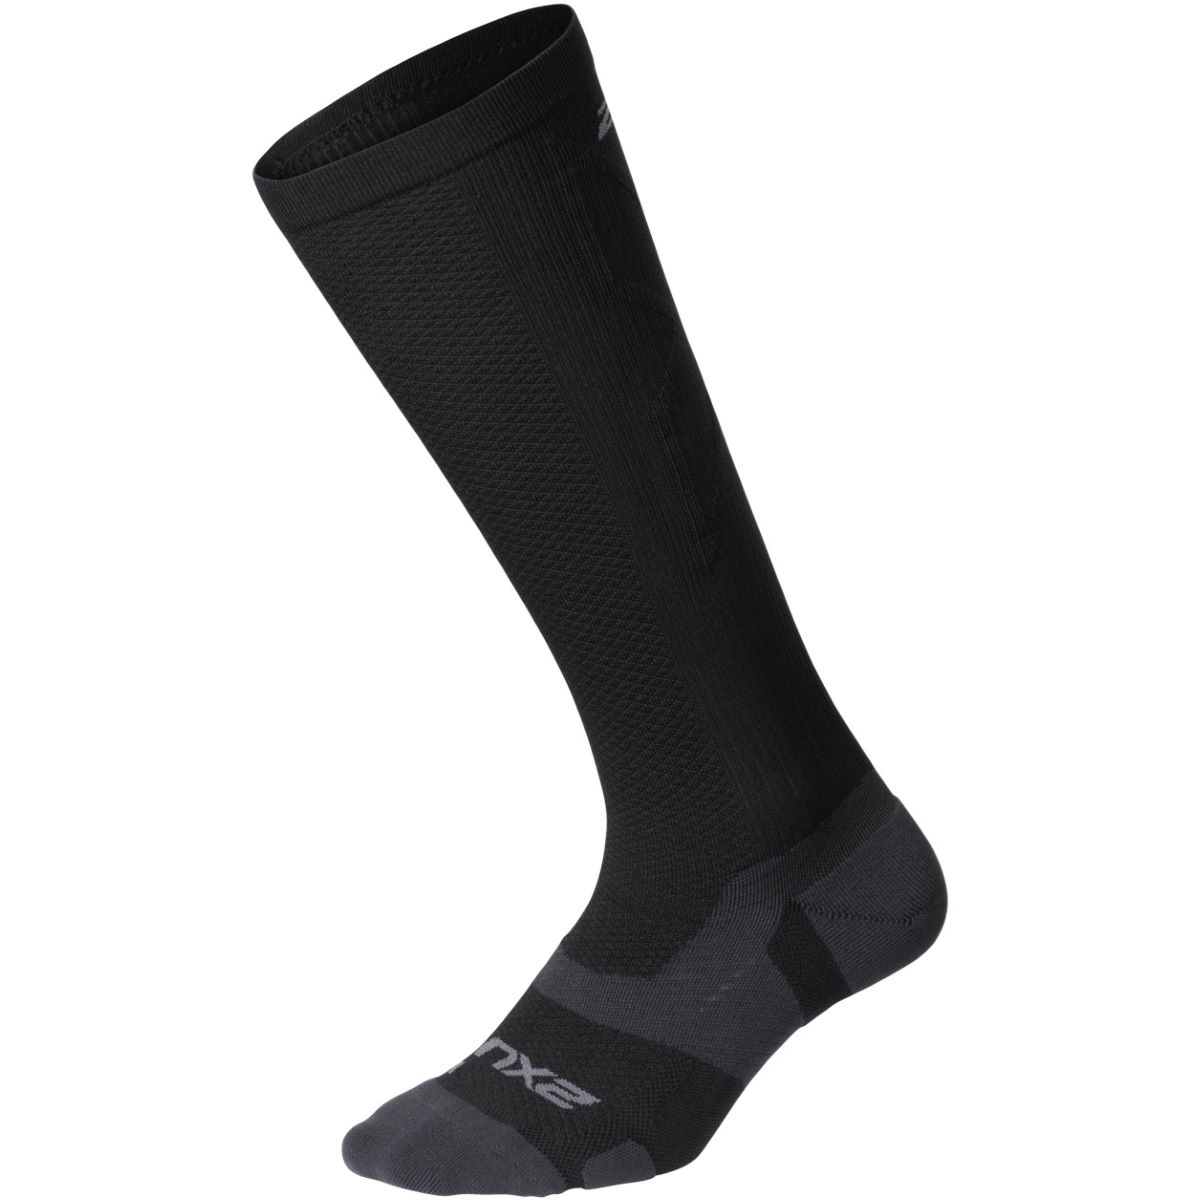 2XU Vectr Light Cushion Full Length Compression Socks - Calcetines